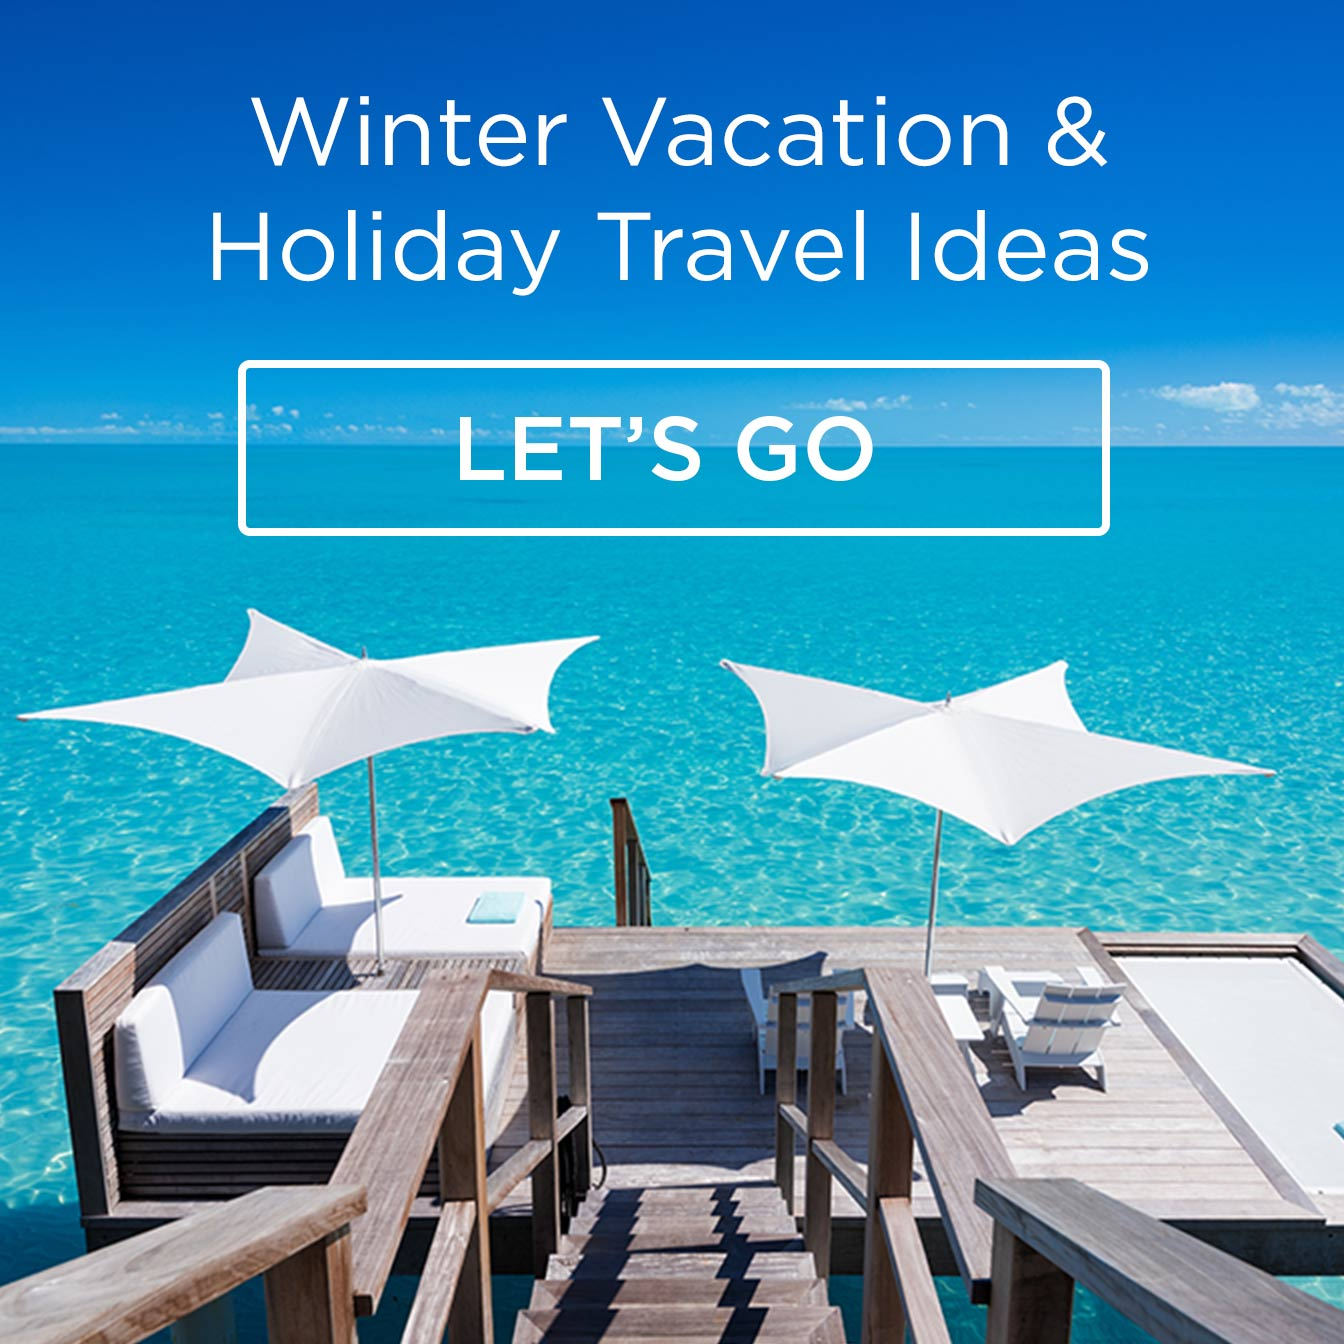 luxury holidays, winter, vacation, luxury hotels, blue ocean, beach hotels